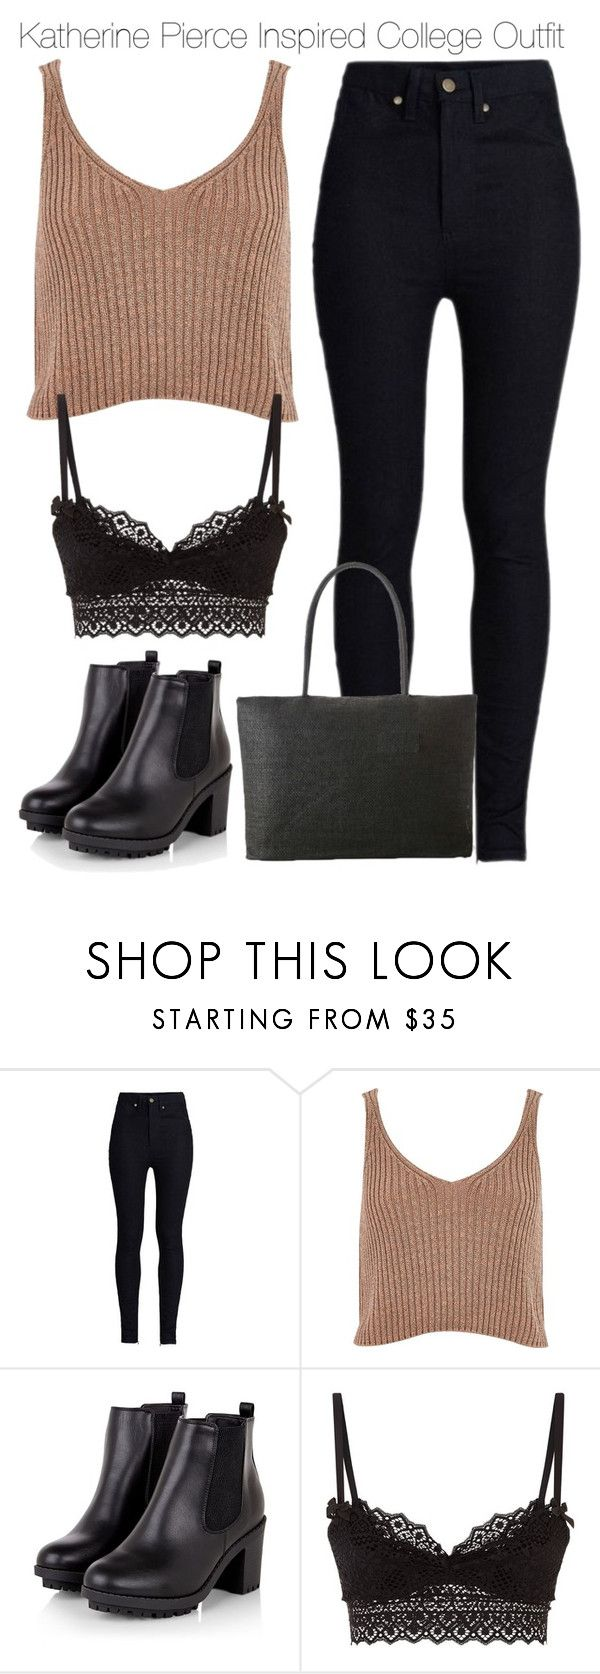 """""""Katherine Pierce Inspired College Outfit"""" by nathj ❤ liked on Polyvore featuring Rodarte, River Island, Agent Provocateur, college, tvd and KatherinePierce"""